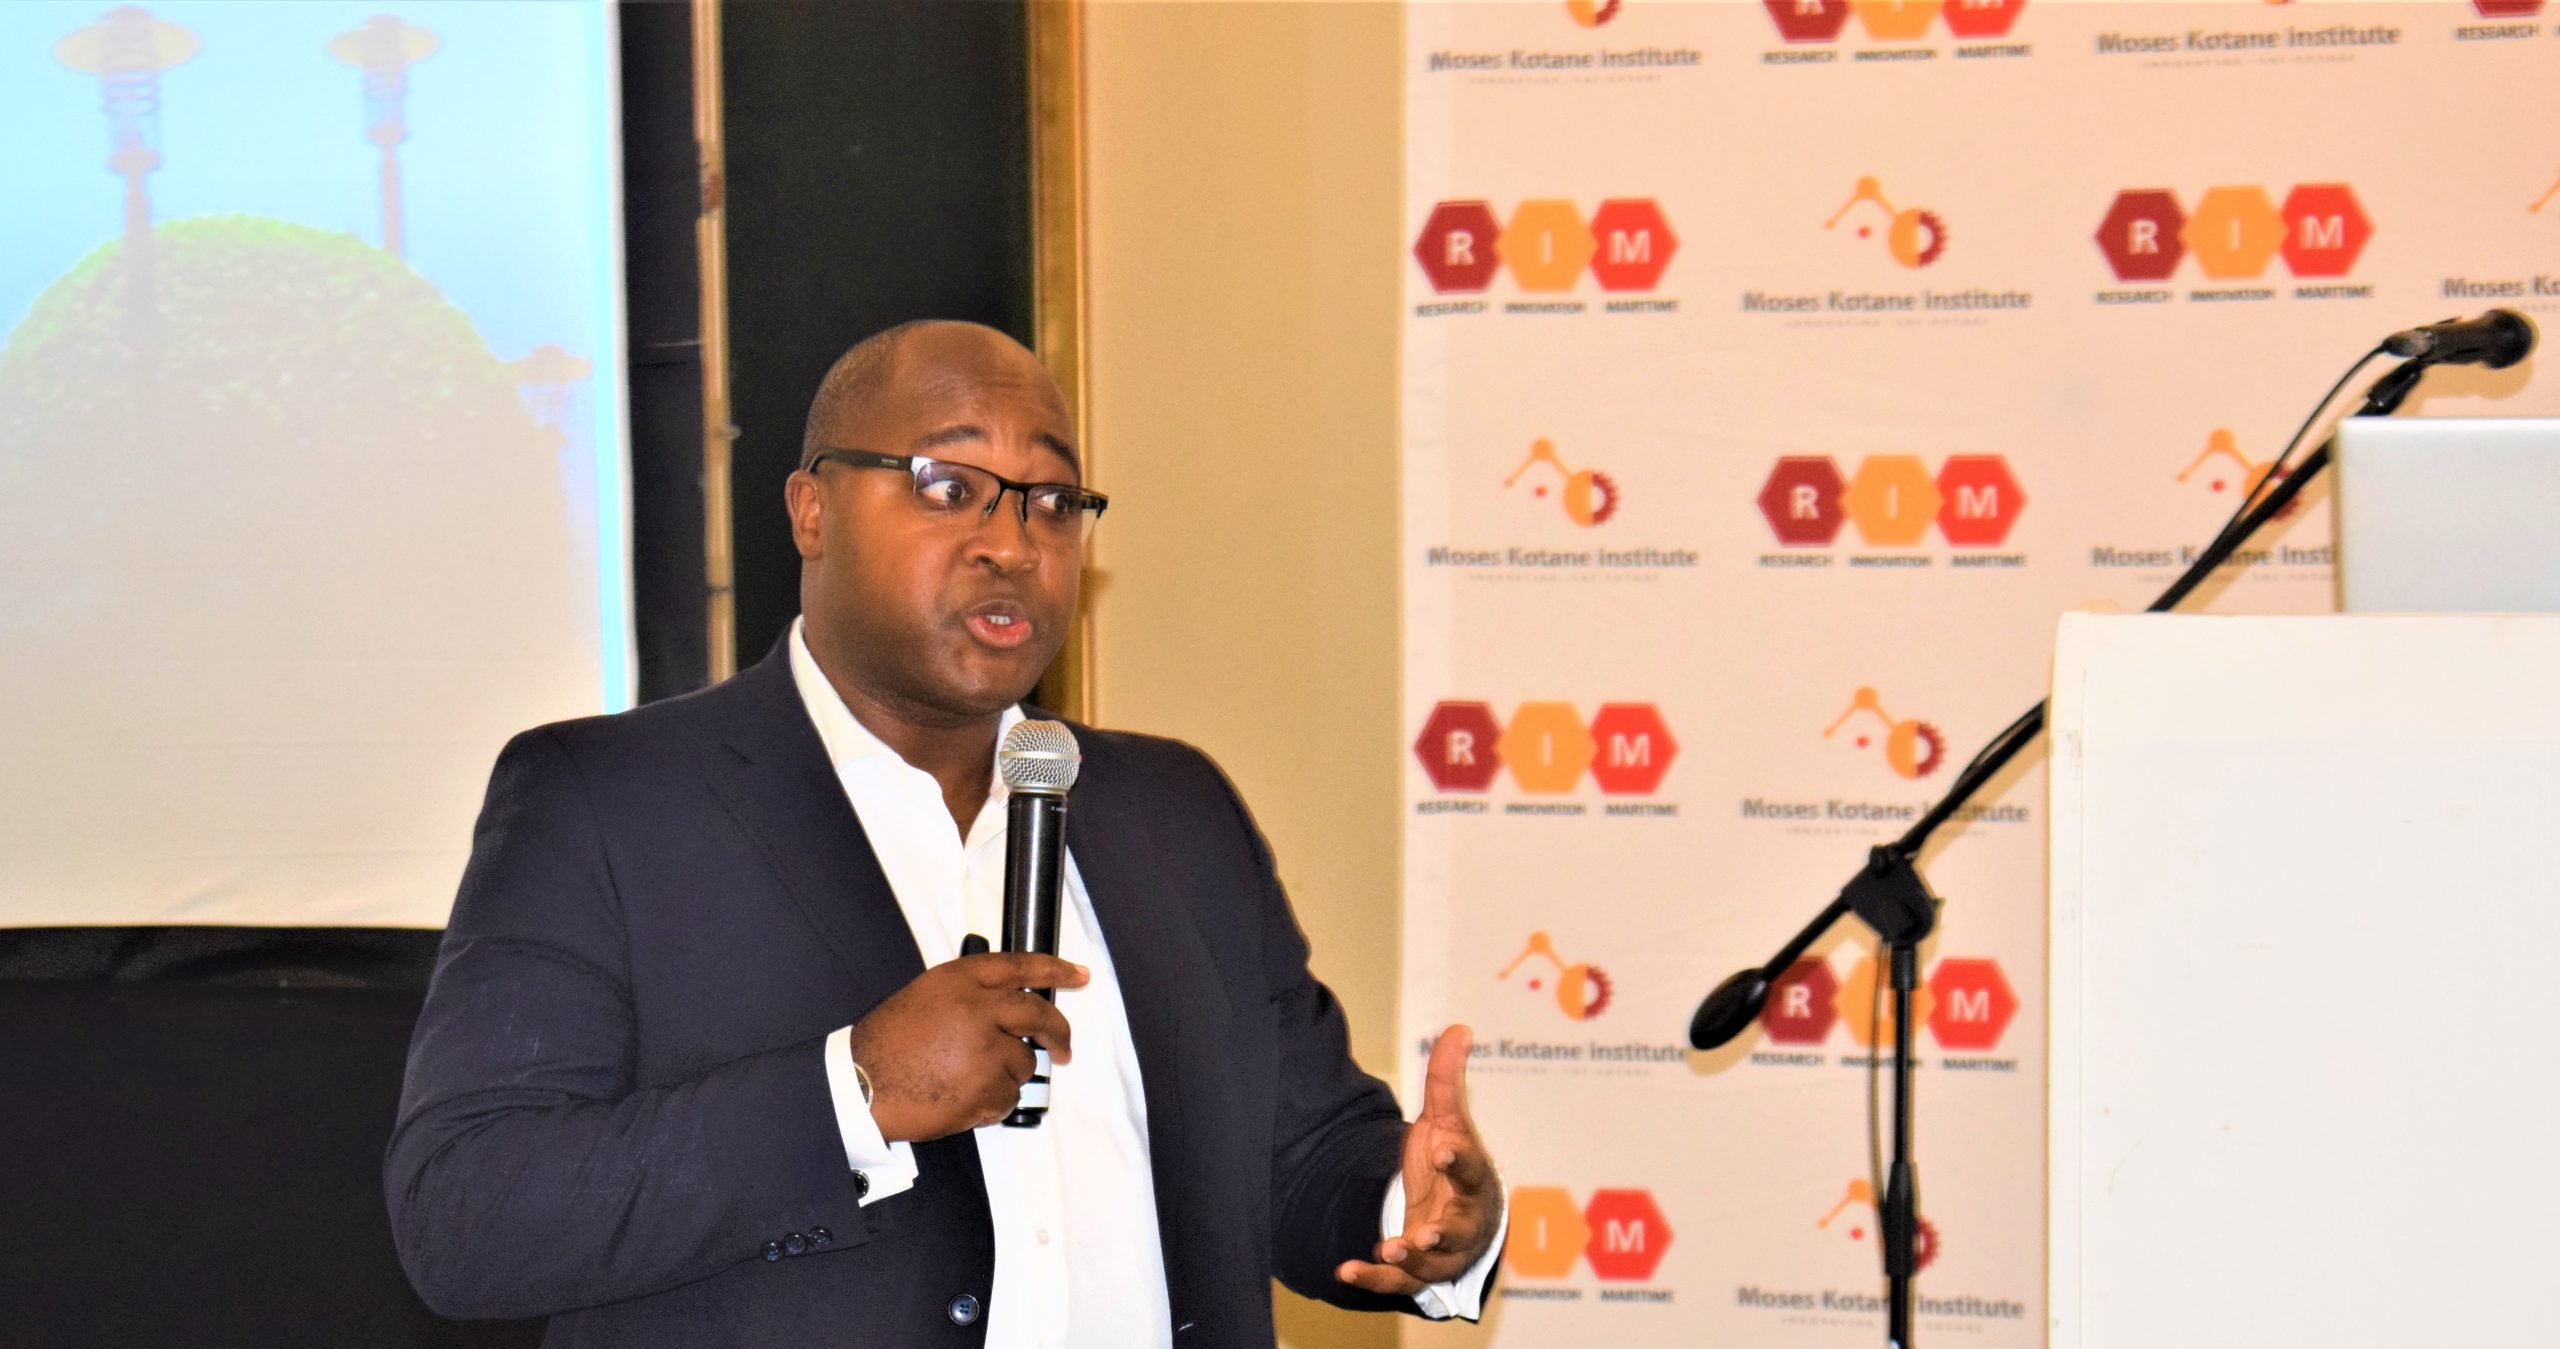 KwaZulu-Natal Digital Transformation Strategy Consultative Workshop